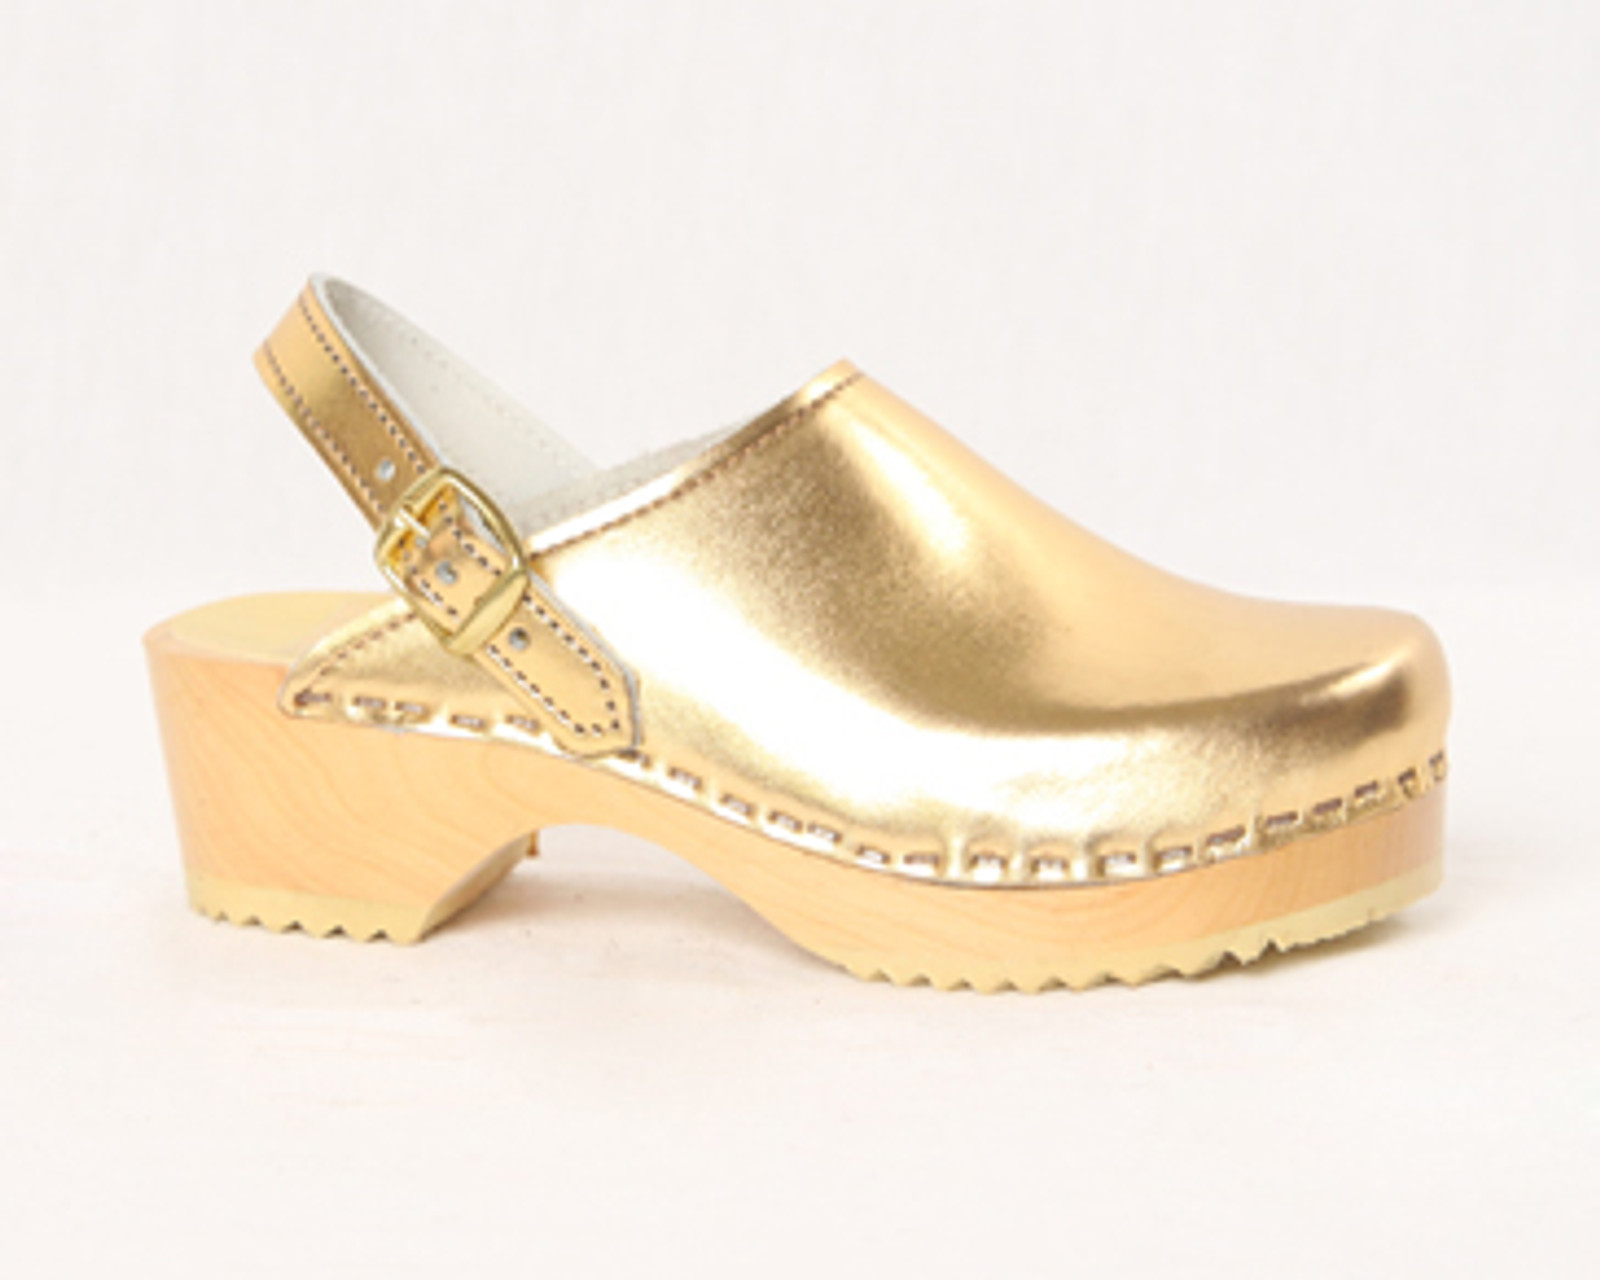 Gold Metallic Leather with Natural Base